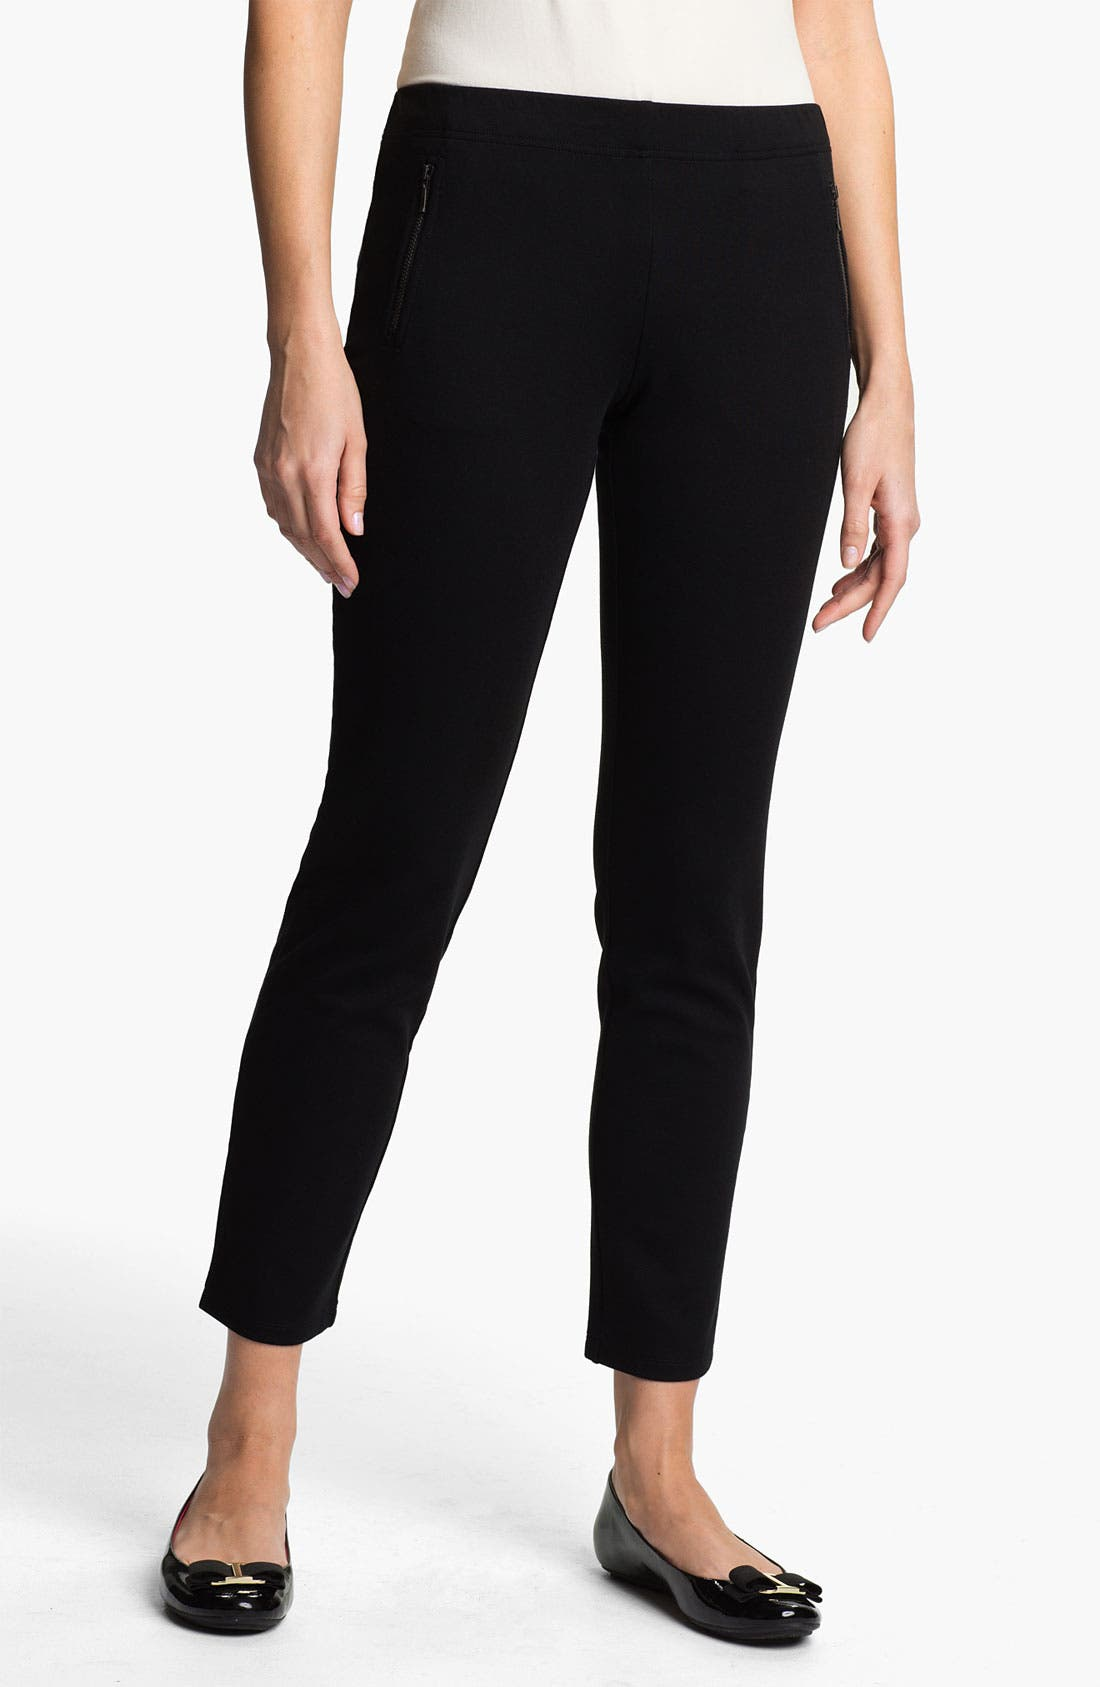 Alternate Image 1 Selected - Eileen Fisher Ankle Pants (Online Exclusive)